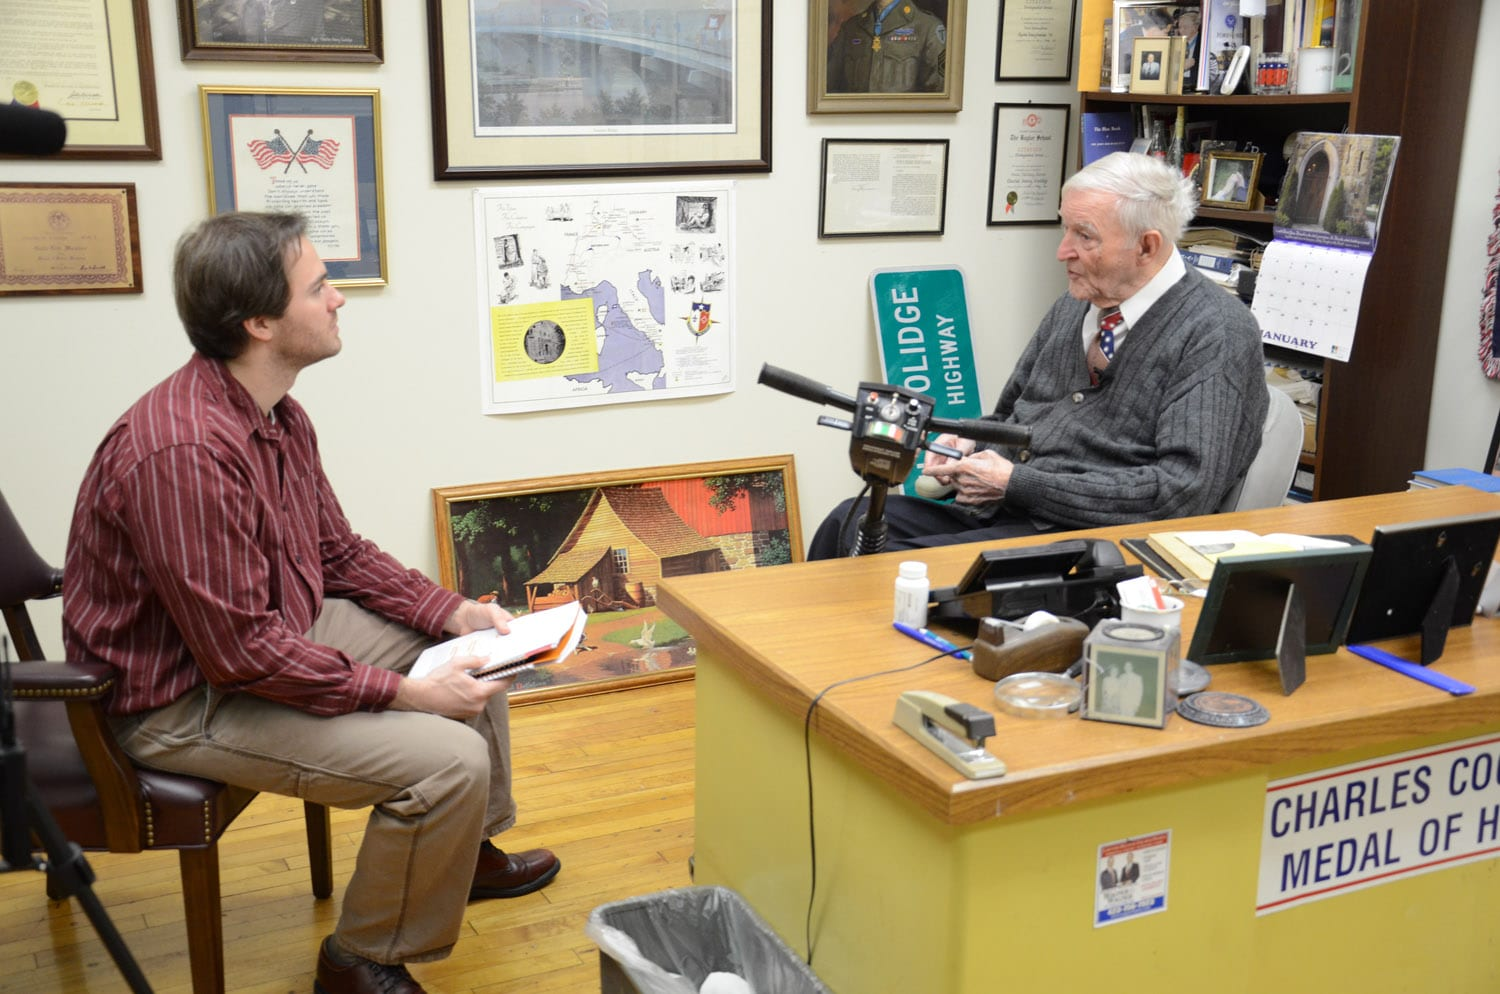 School of Journalism and Electronic Media graduate student Joe Kuczynski interviews World War II Medal of Honor recipient Charles Coolidge as part of the Medal of Honor Project's history of the Medal of Honor in Tennessee documentary project.